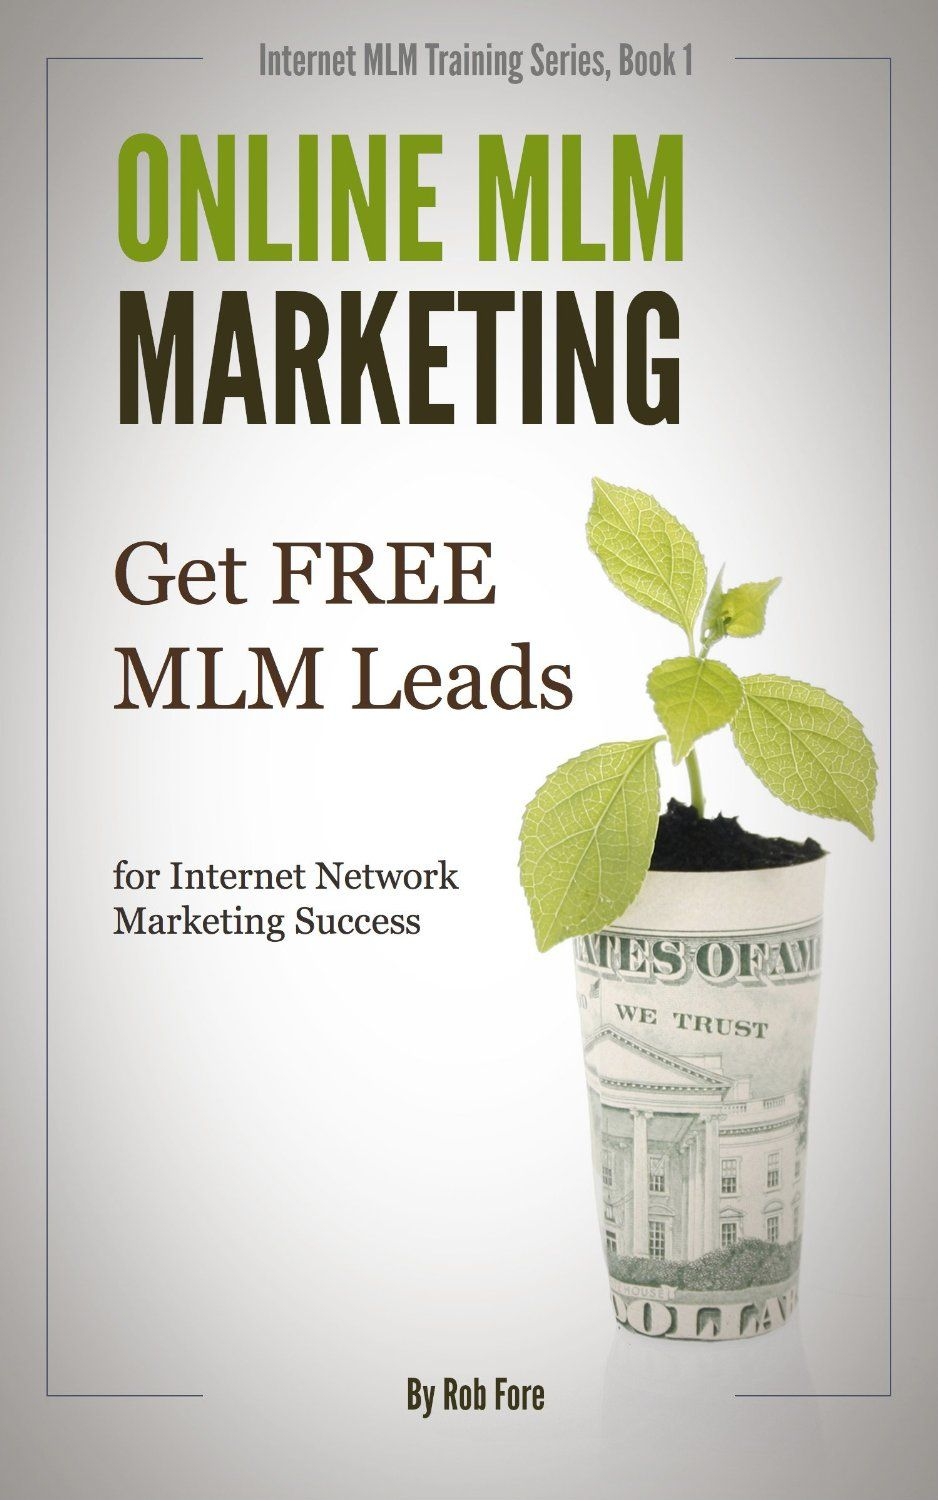 Online MLM Marketing - How to Get 100+ Free MLM Leads Per Day for Massive Network Marketing Success  by Rob Fore ($6.04)